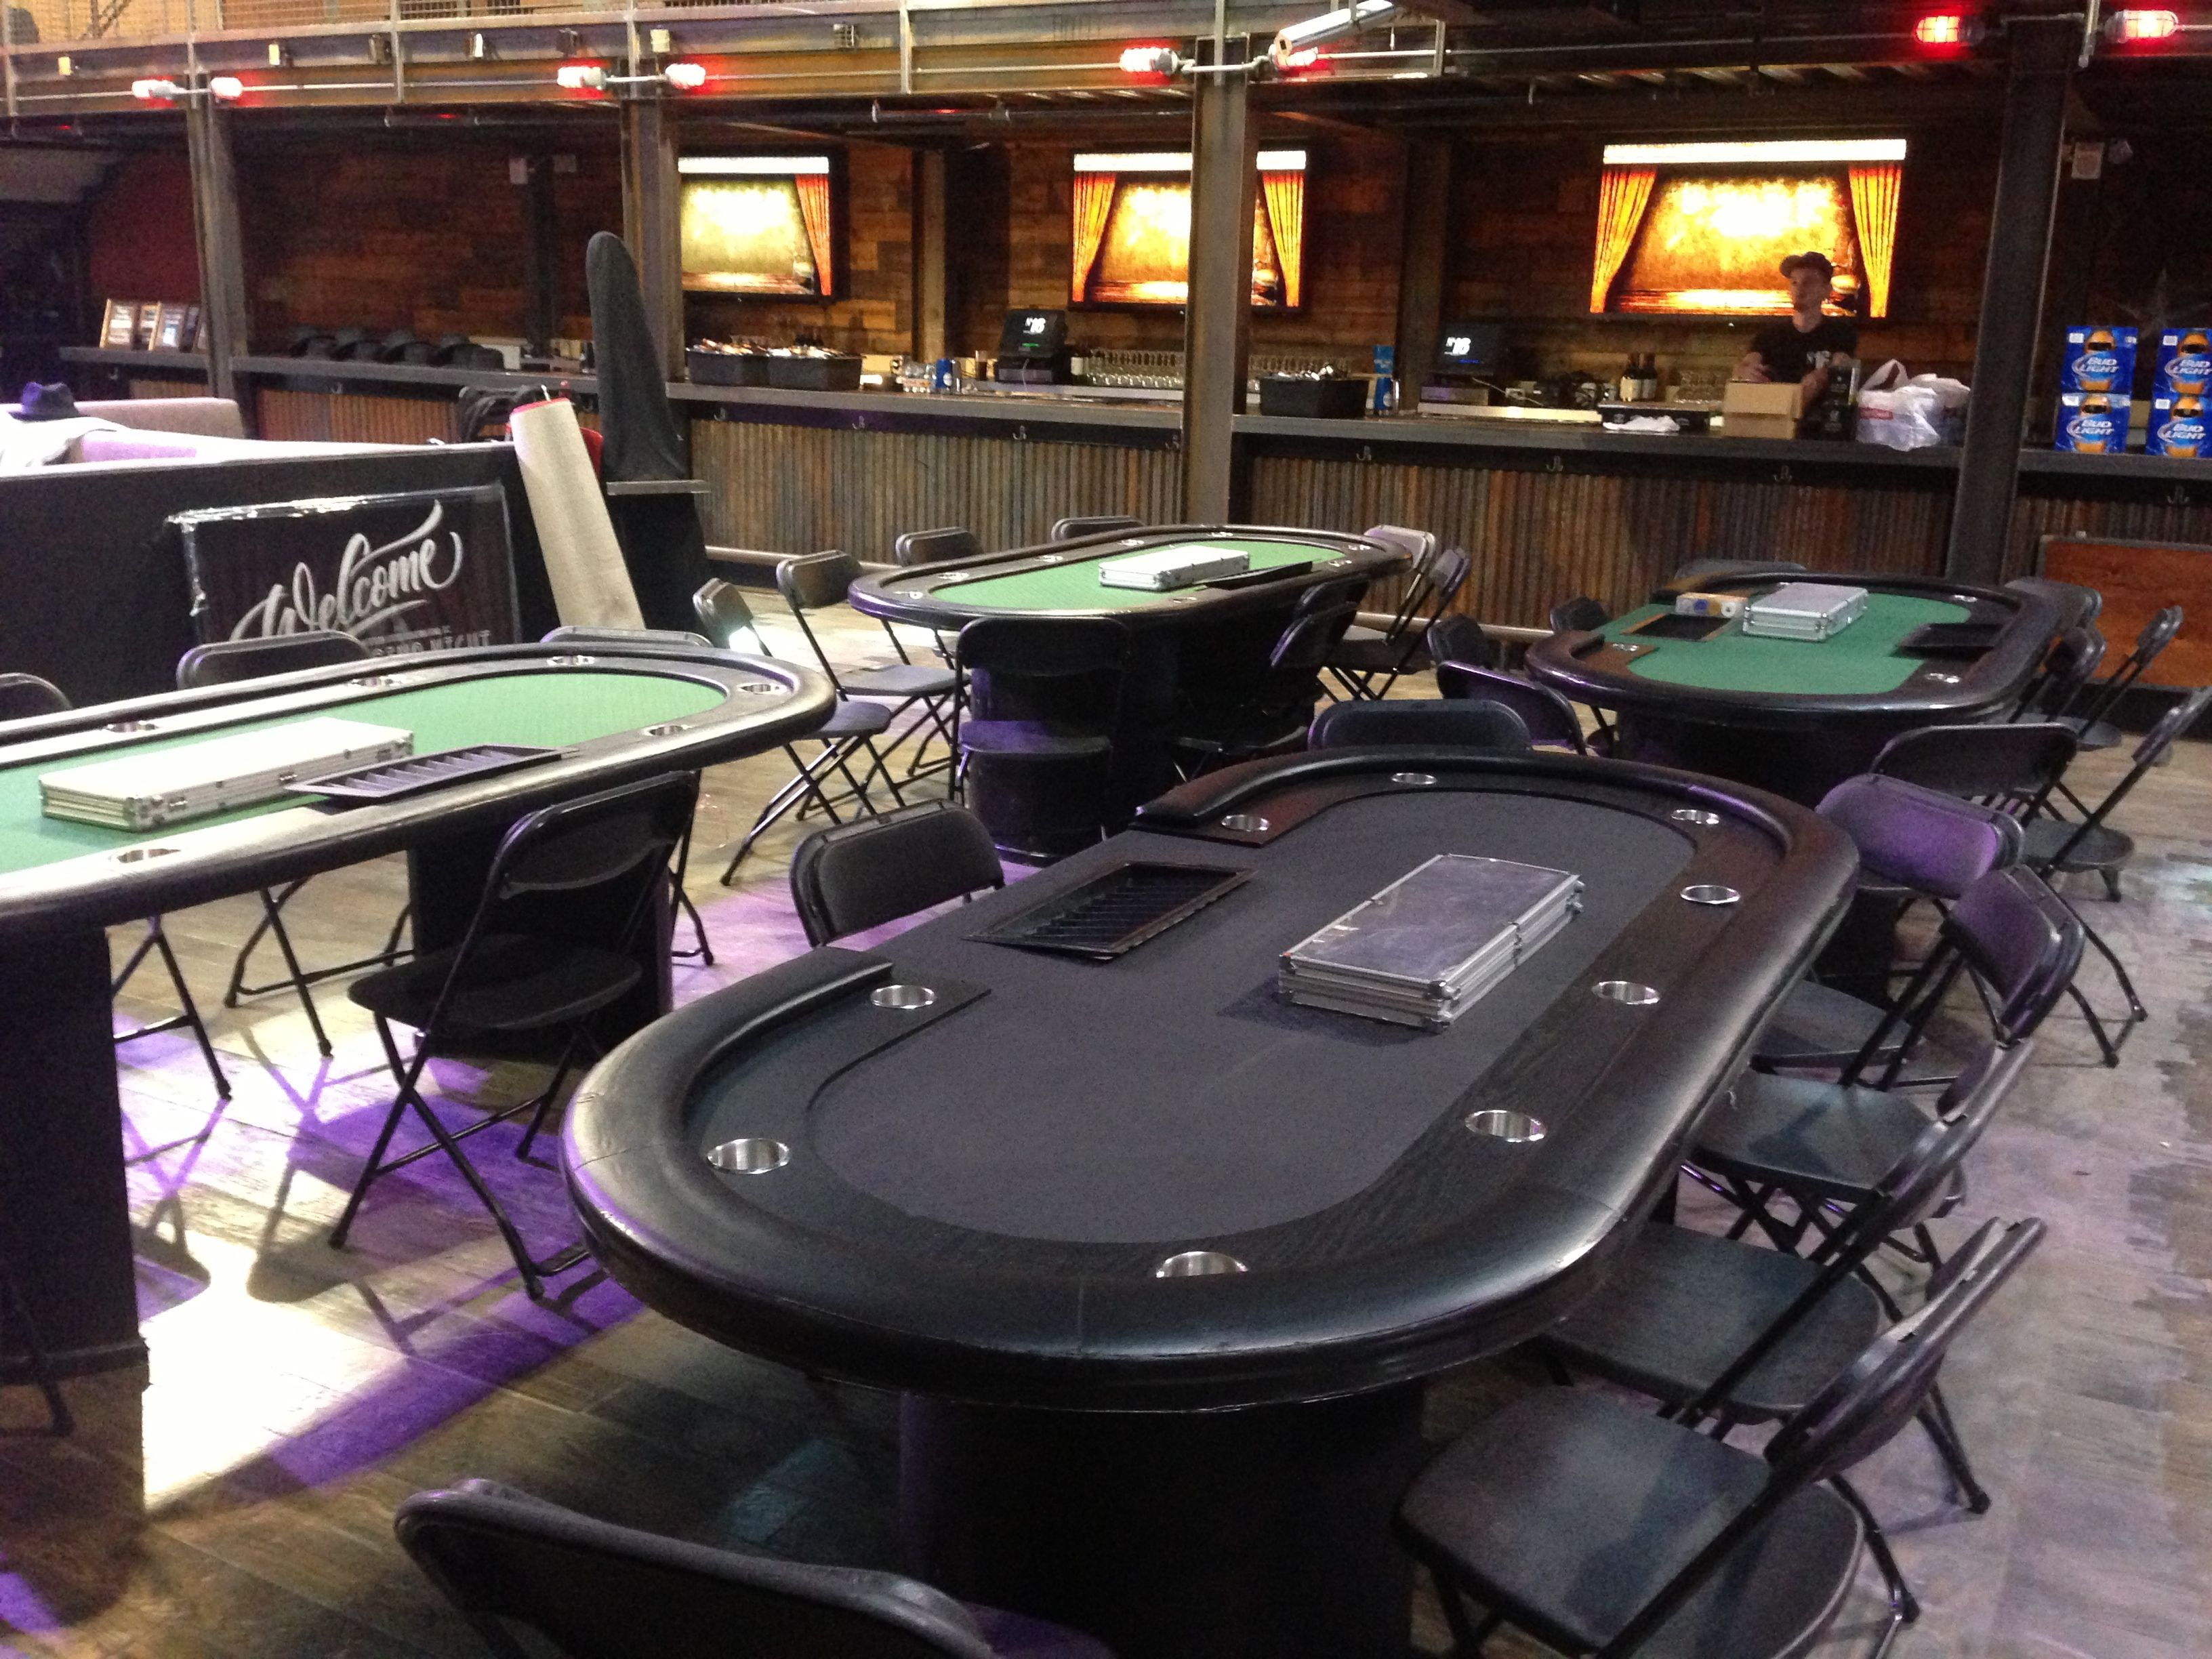 Poker Tournaments For Non Profit Fundraisers Dads Poker Night Casino Party Rentals Party Rentals Casino Party Poker Night